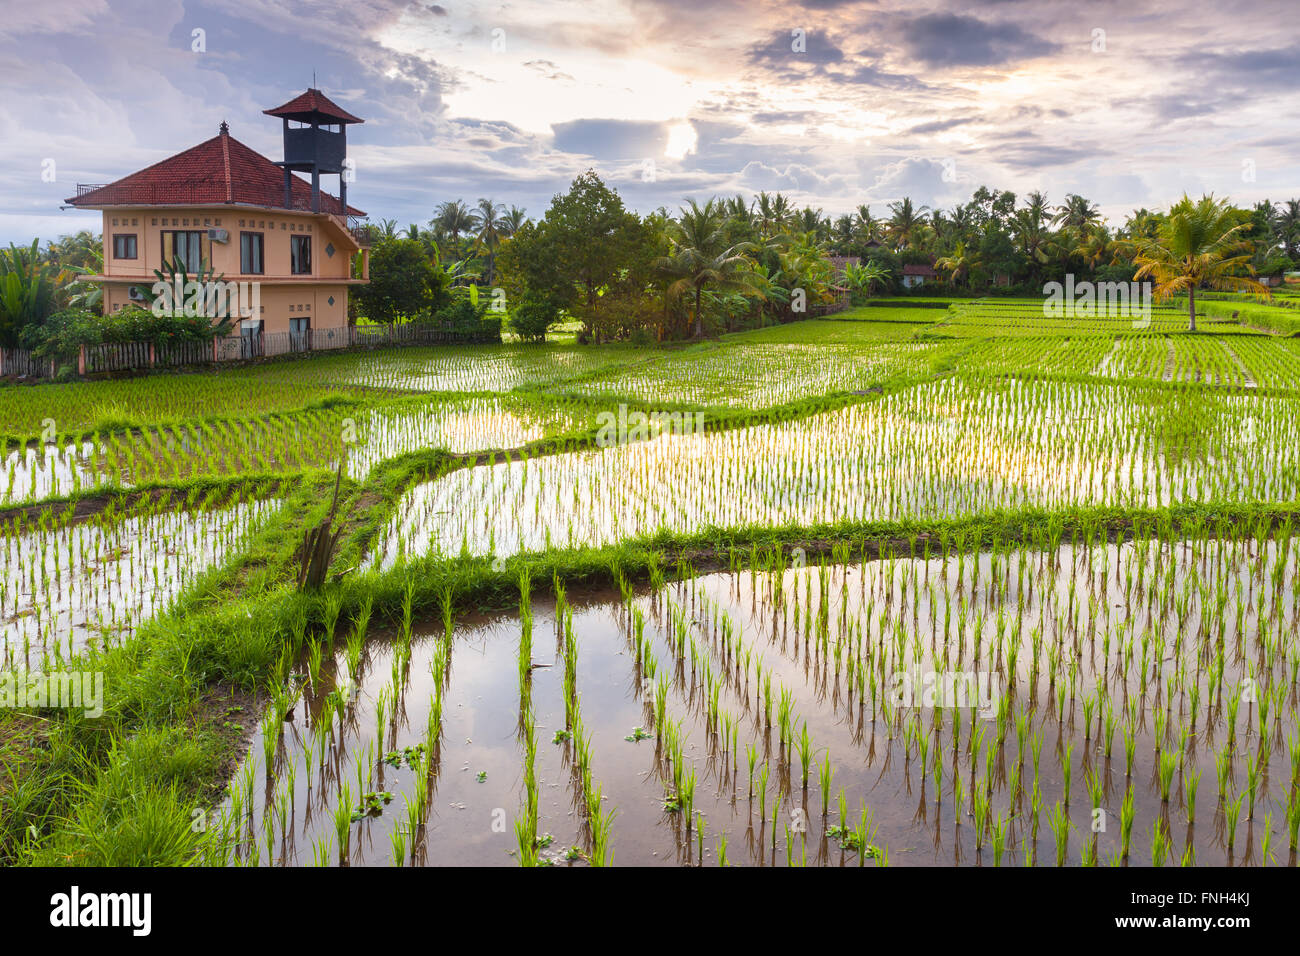 Beautiful sunset over the rice field, Ubud, Bali, Indonesia. - Stock Image